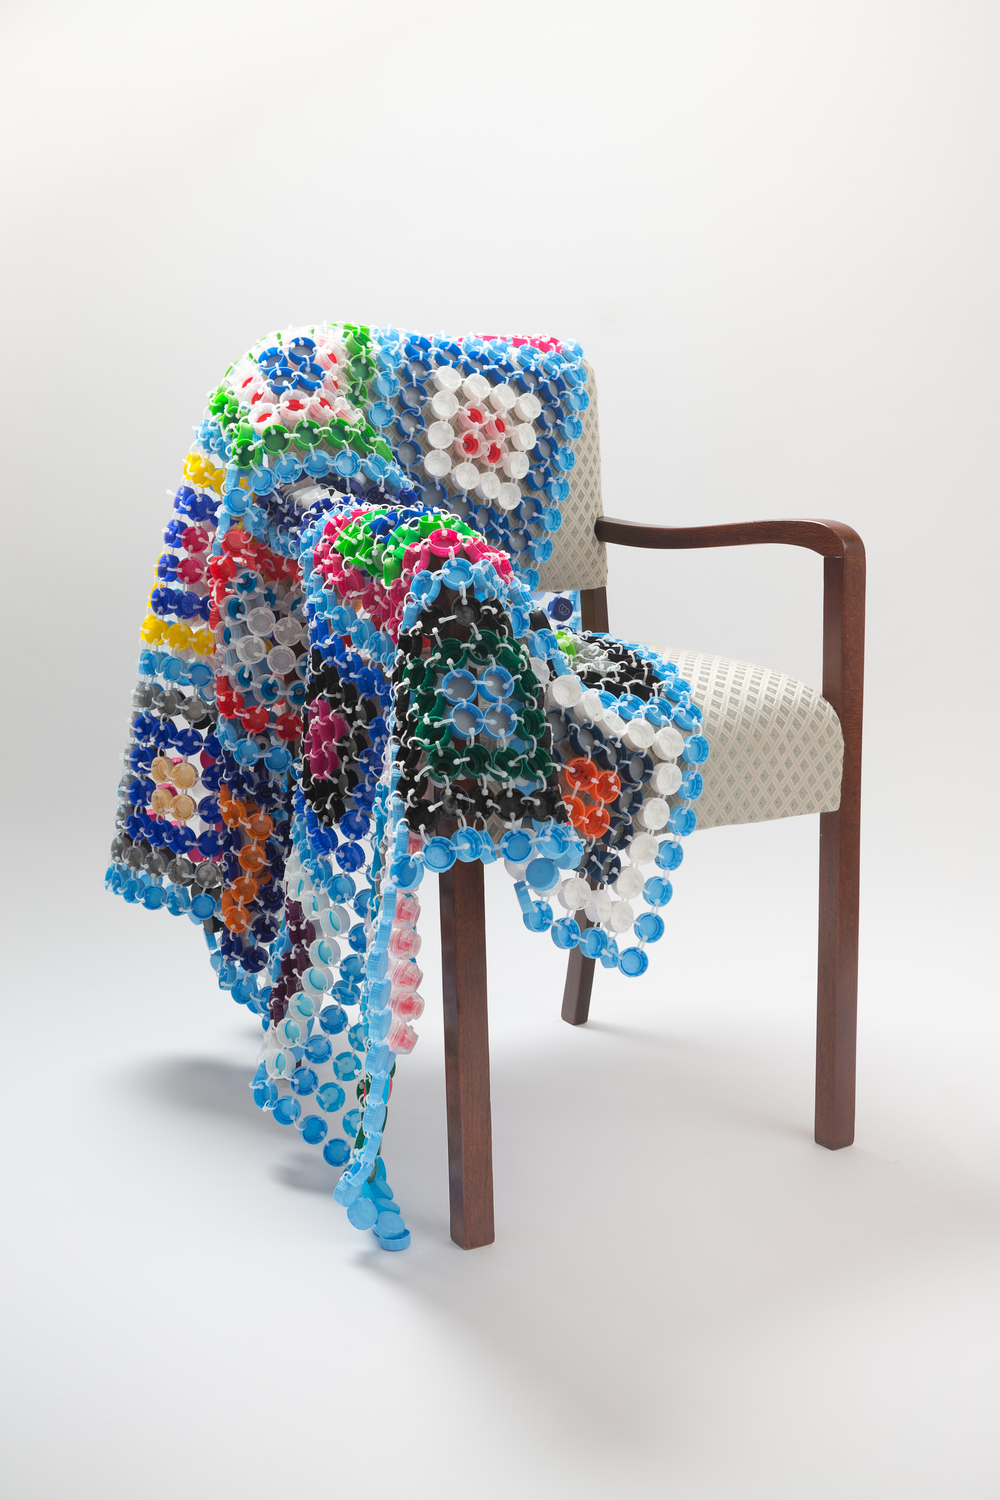 Big Nana   2014  Chair, plastic bottle caps & cable ties  90 x 60 x 60cm  photographer James Field, courtesy of Adelaide Central School of Art